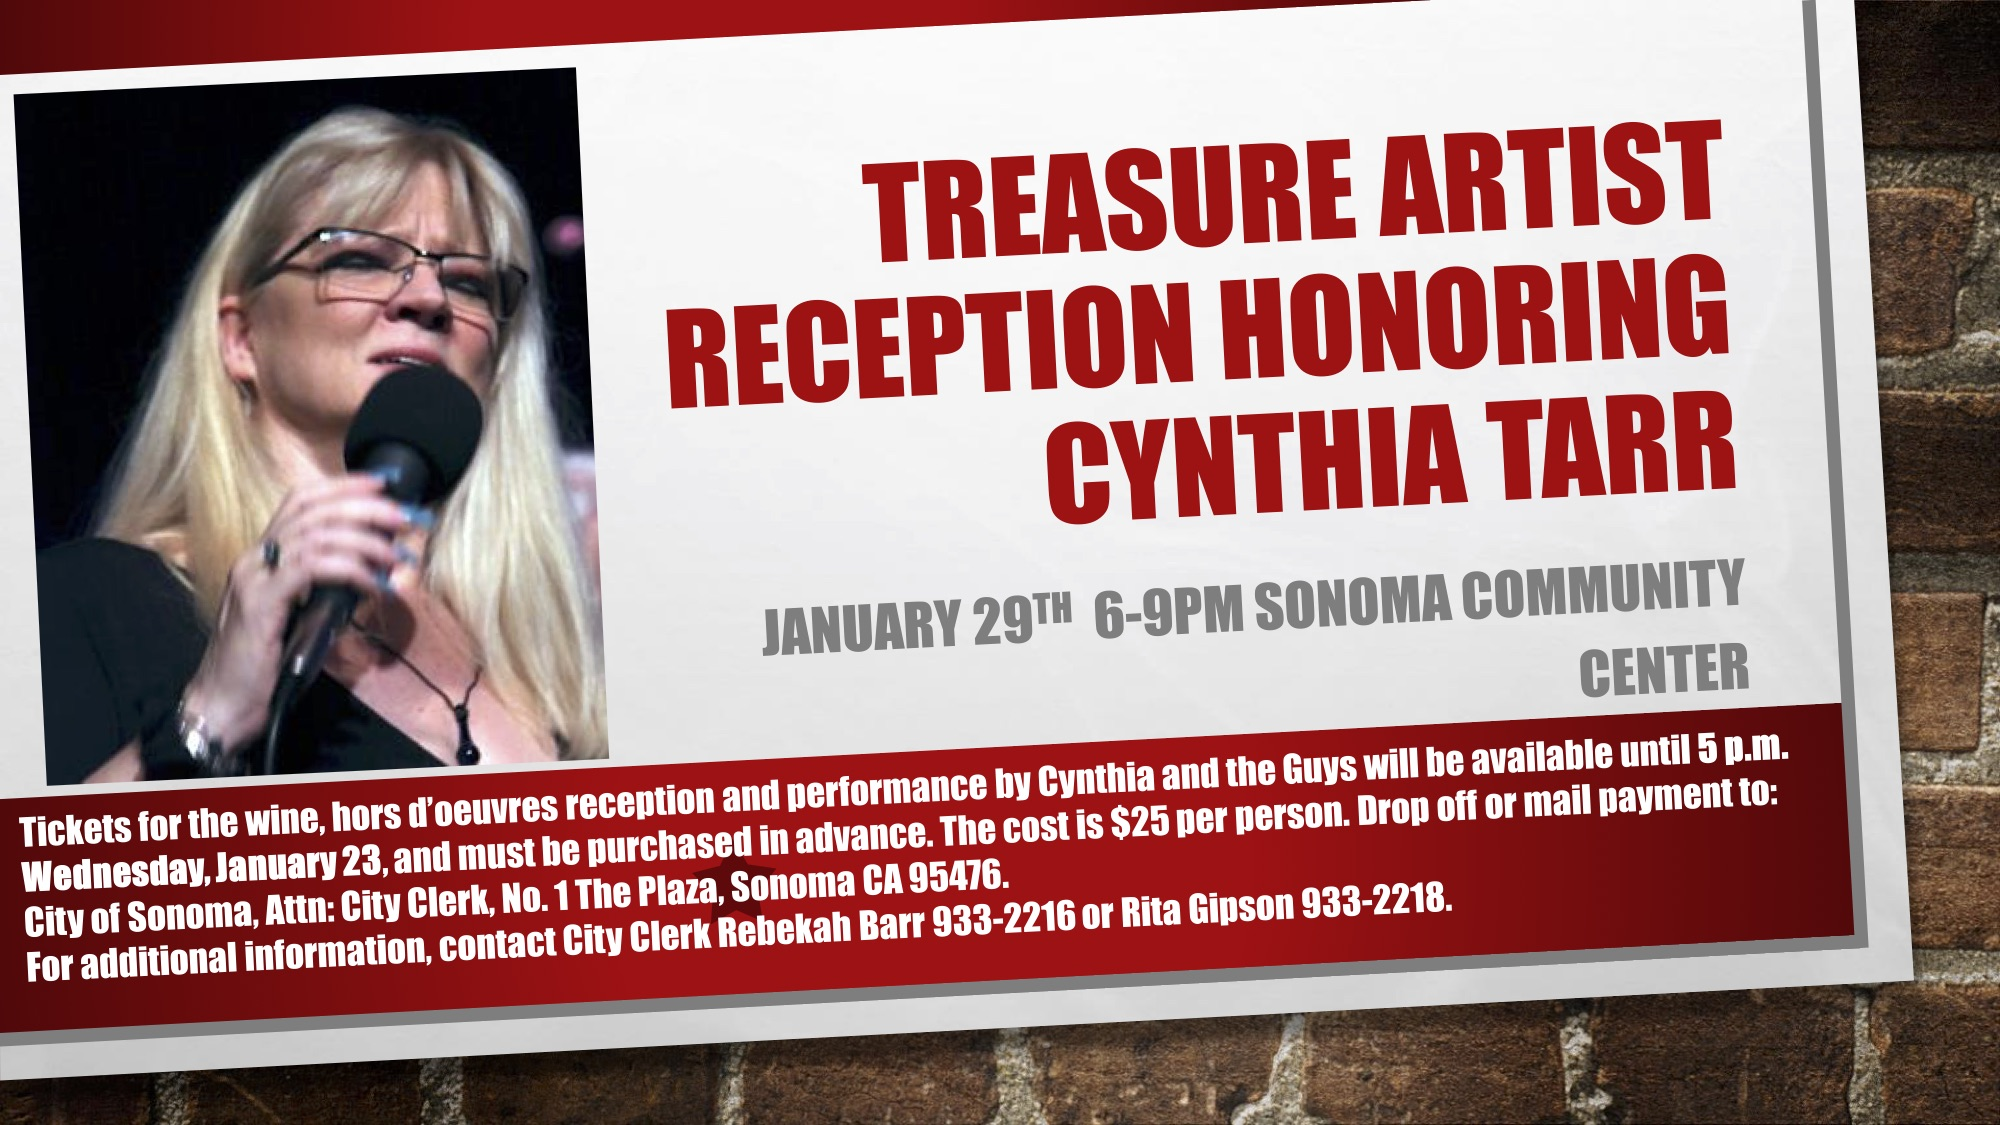 Treasure Artist Reception January 29